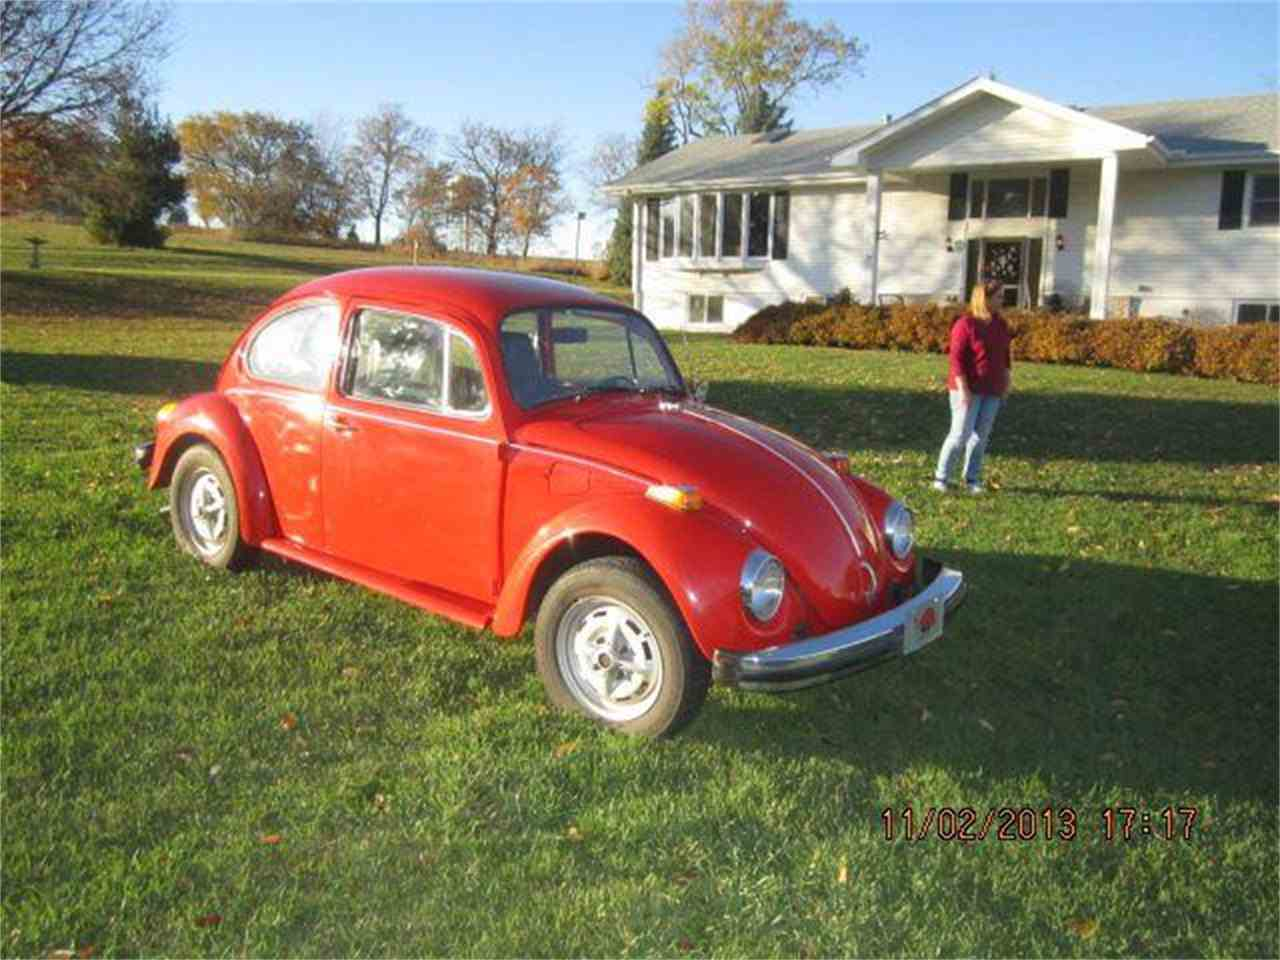 Large Picture of '74 Beetle located in Shenandoah Iowa - $12,500.00 Offered by Wayne Johnson Private Collection - MBL4